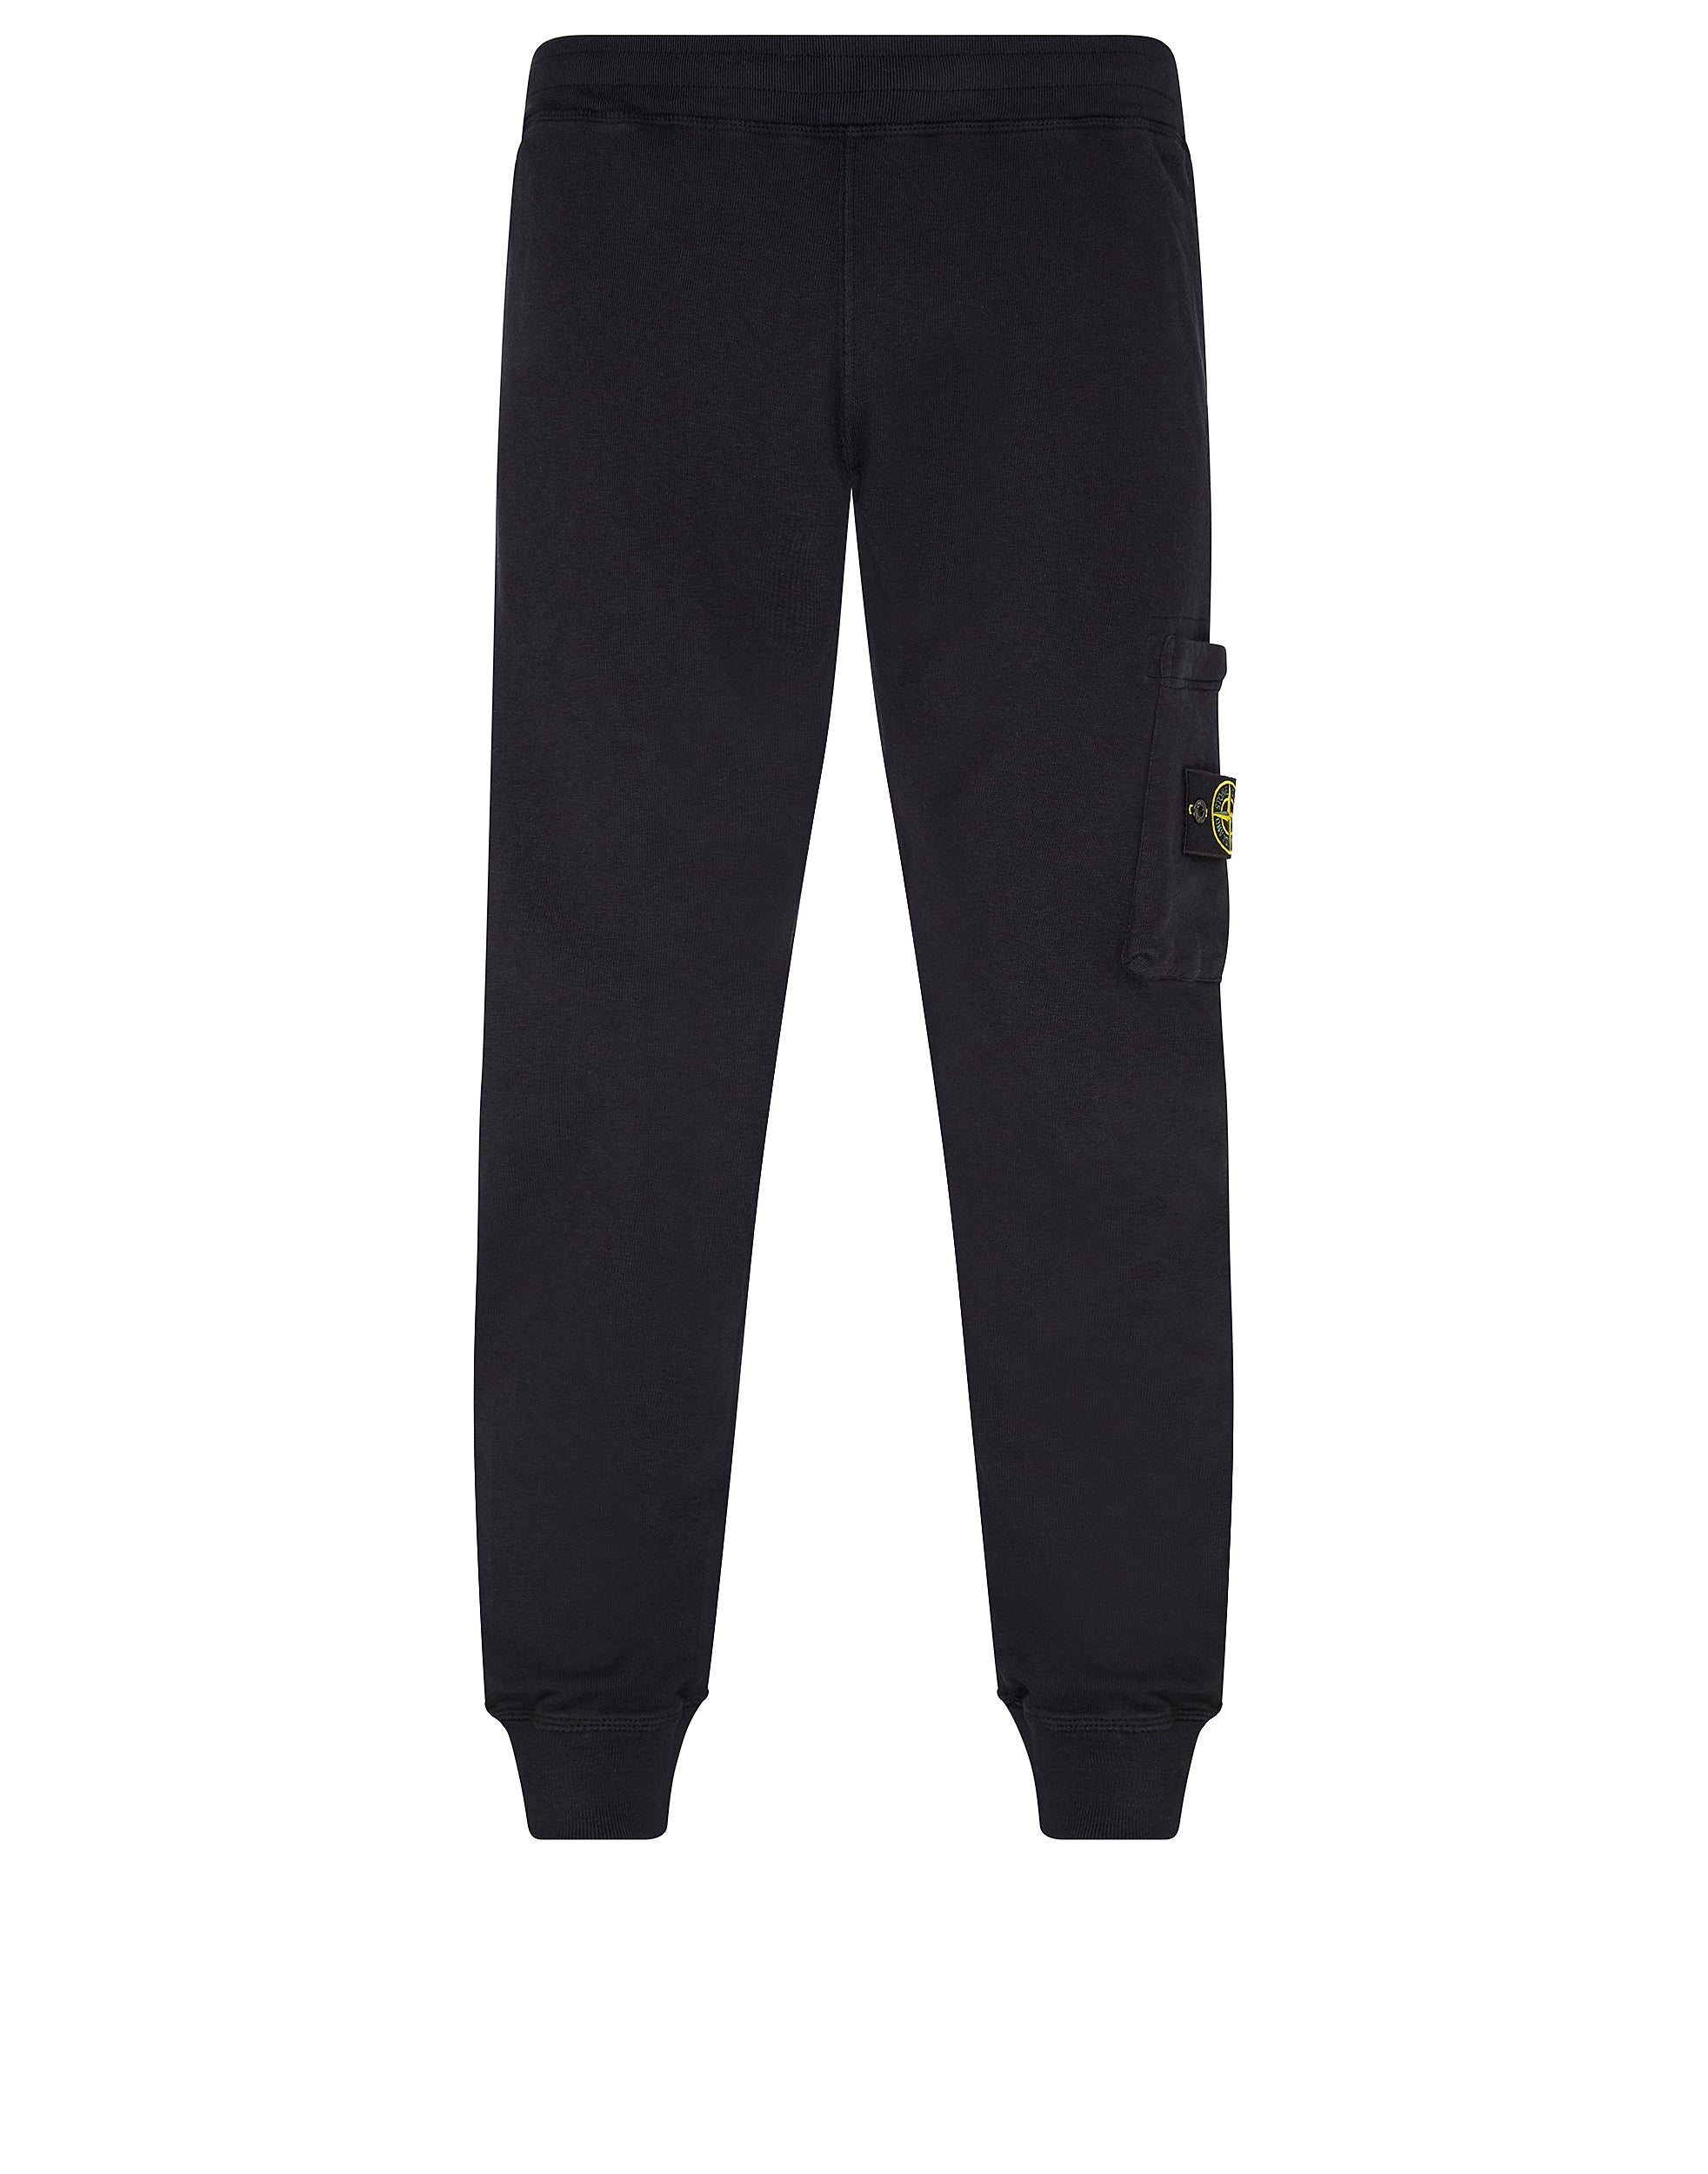 61660 T.CO+OLD Jogging Trousers in Navy Blue